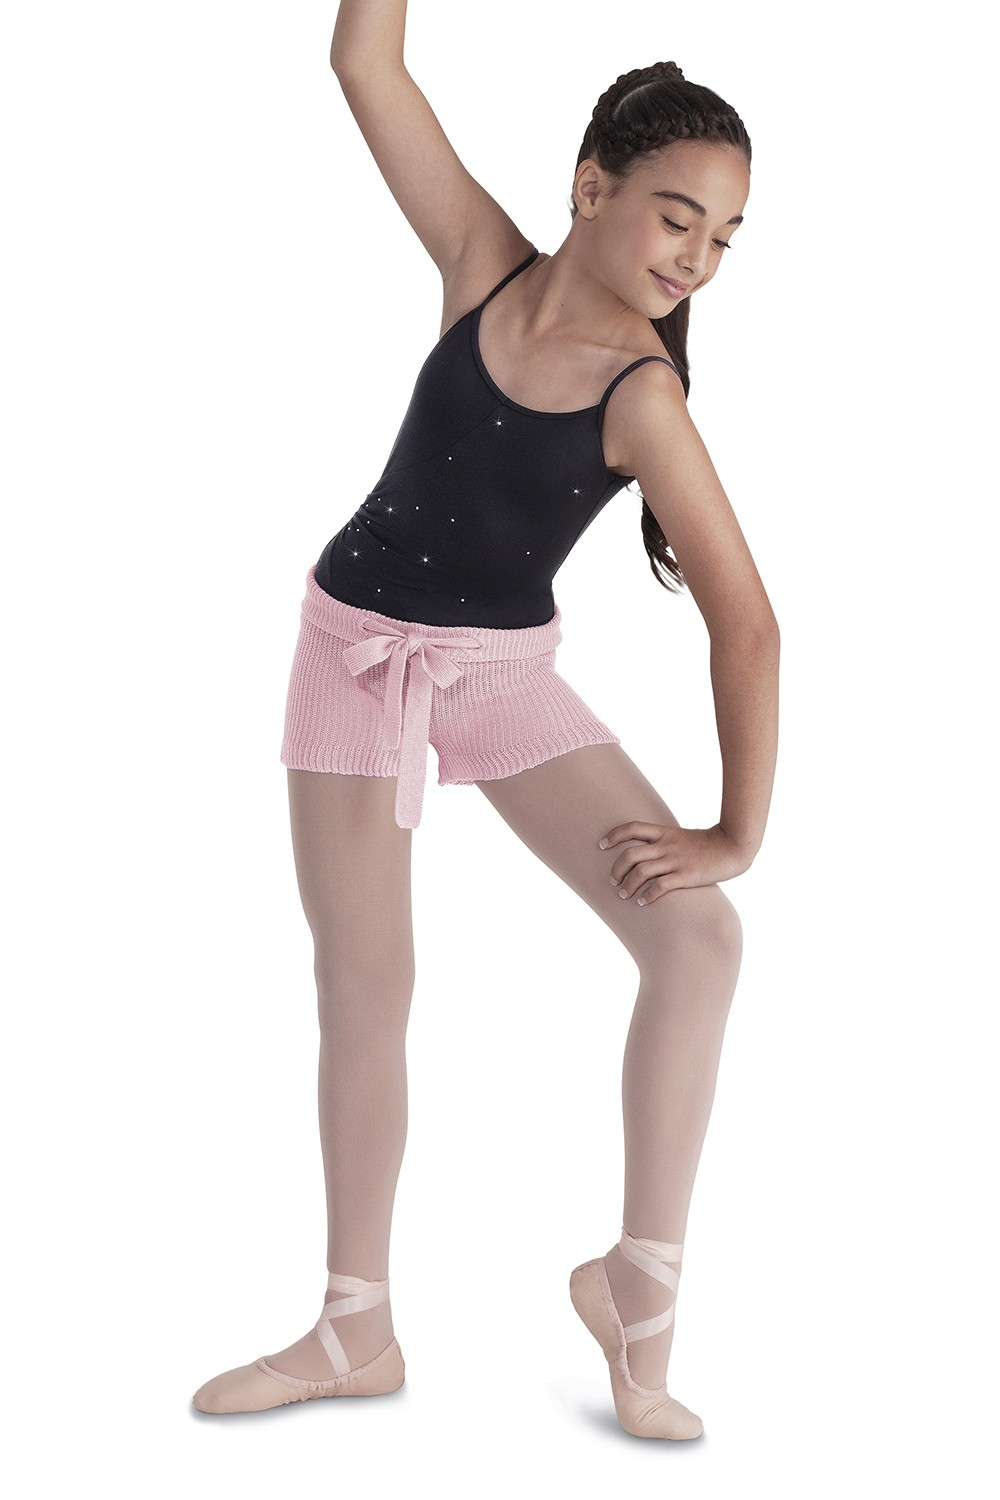 Drawstring Knit Shorts Children's Dance Warmups